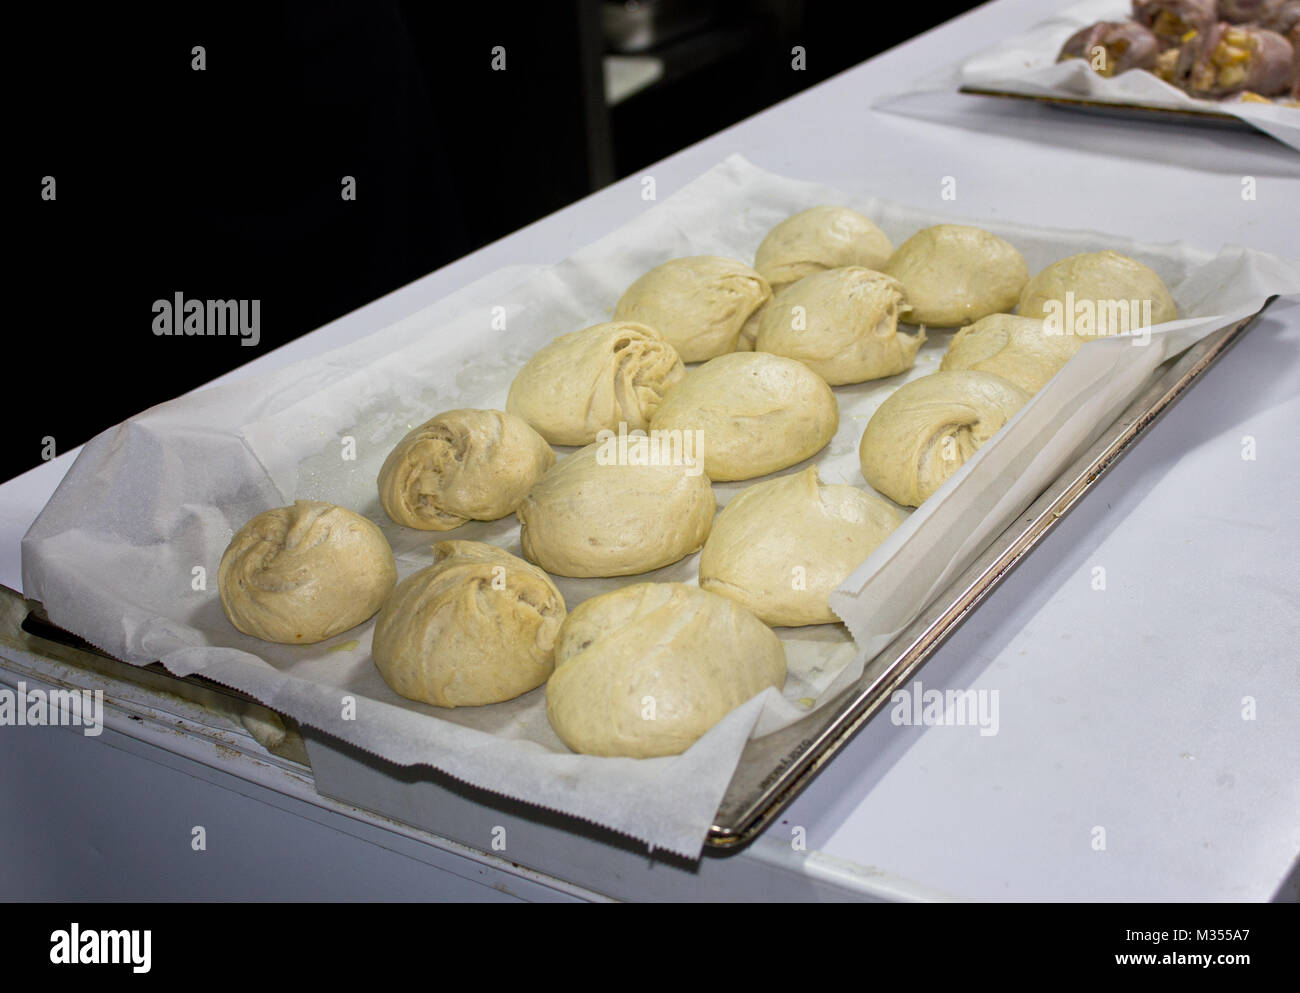 Steam buns from yeast wheat dough on tray - Stock Image